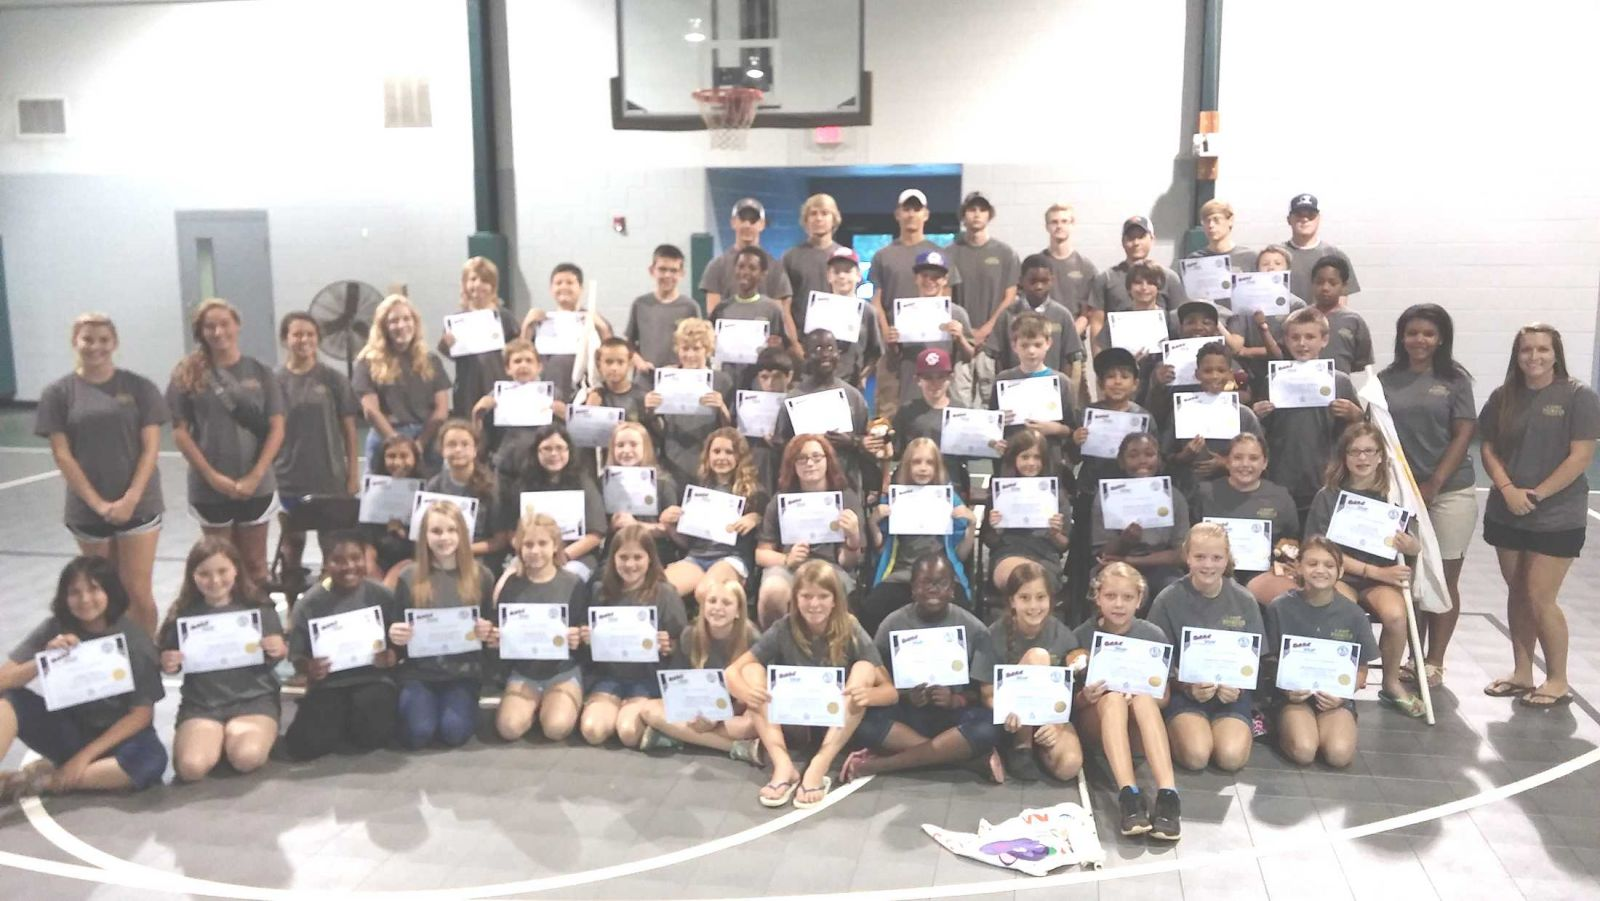 dare graduates 47 5th graders in Camp at LaGrange